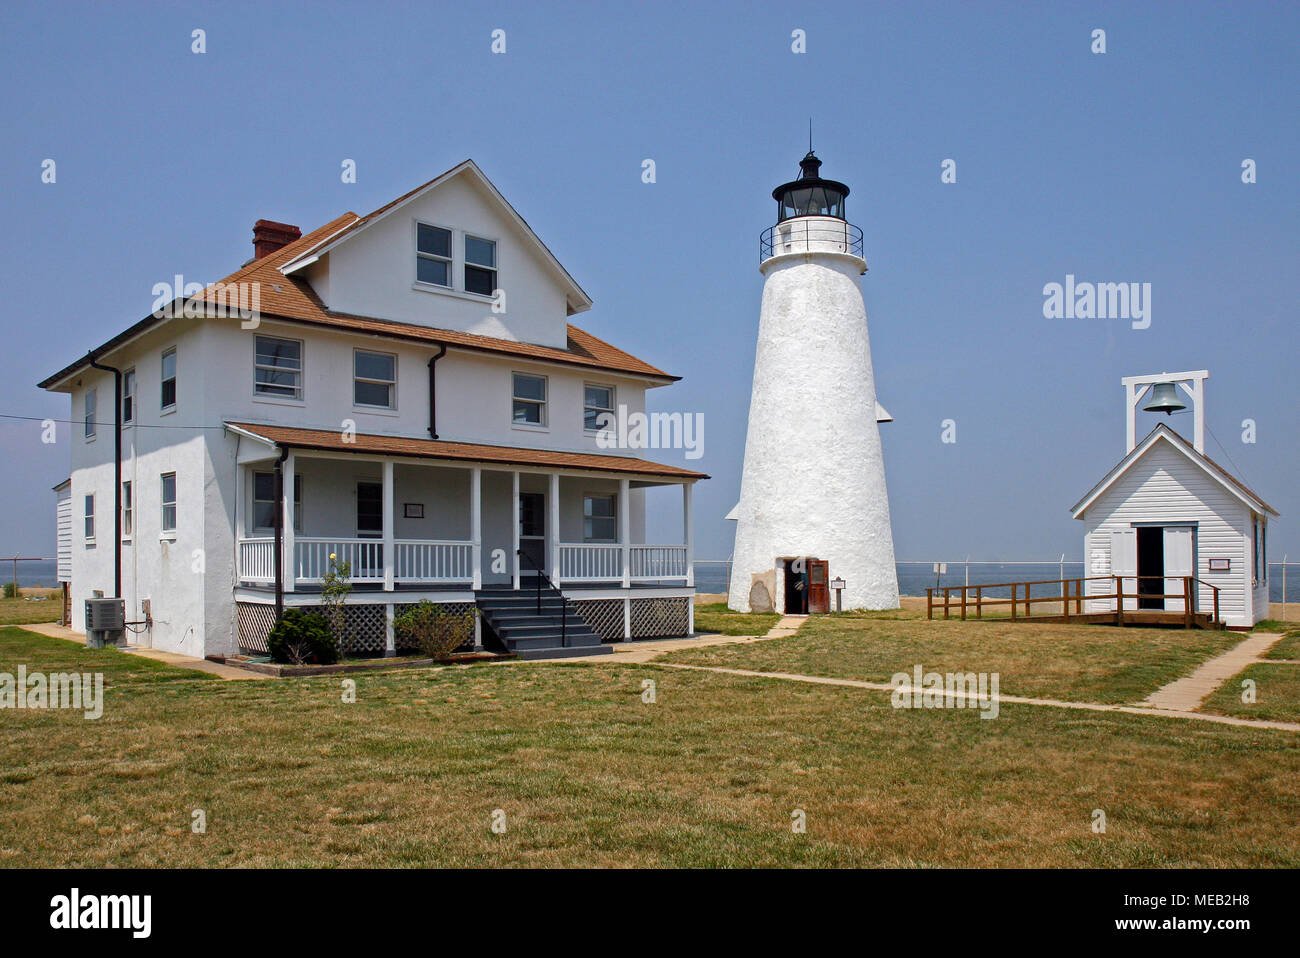 Cove Point Lighthous Station showing tower, fog bell building and keepers duplex. - Stock Image